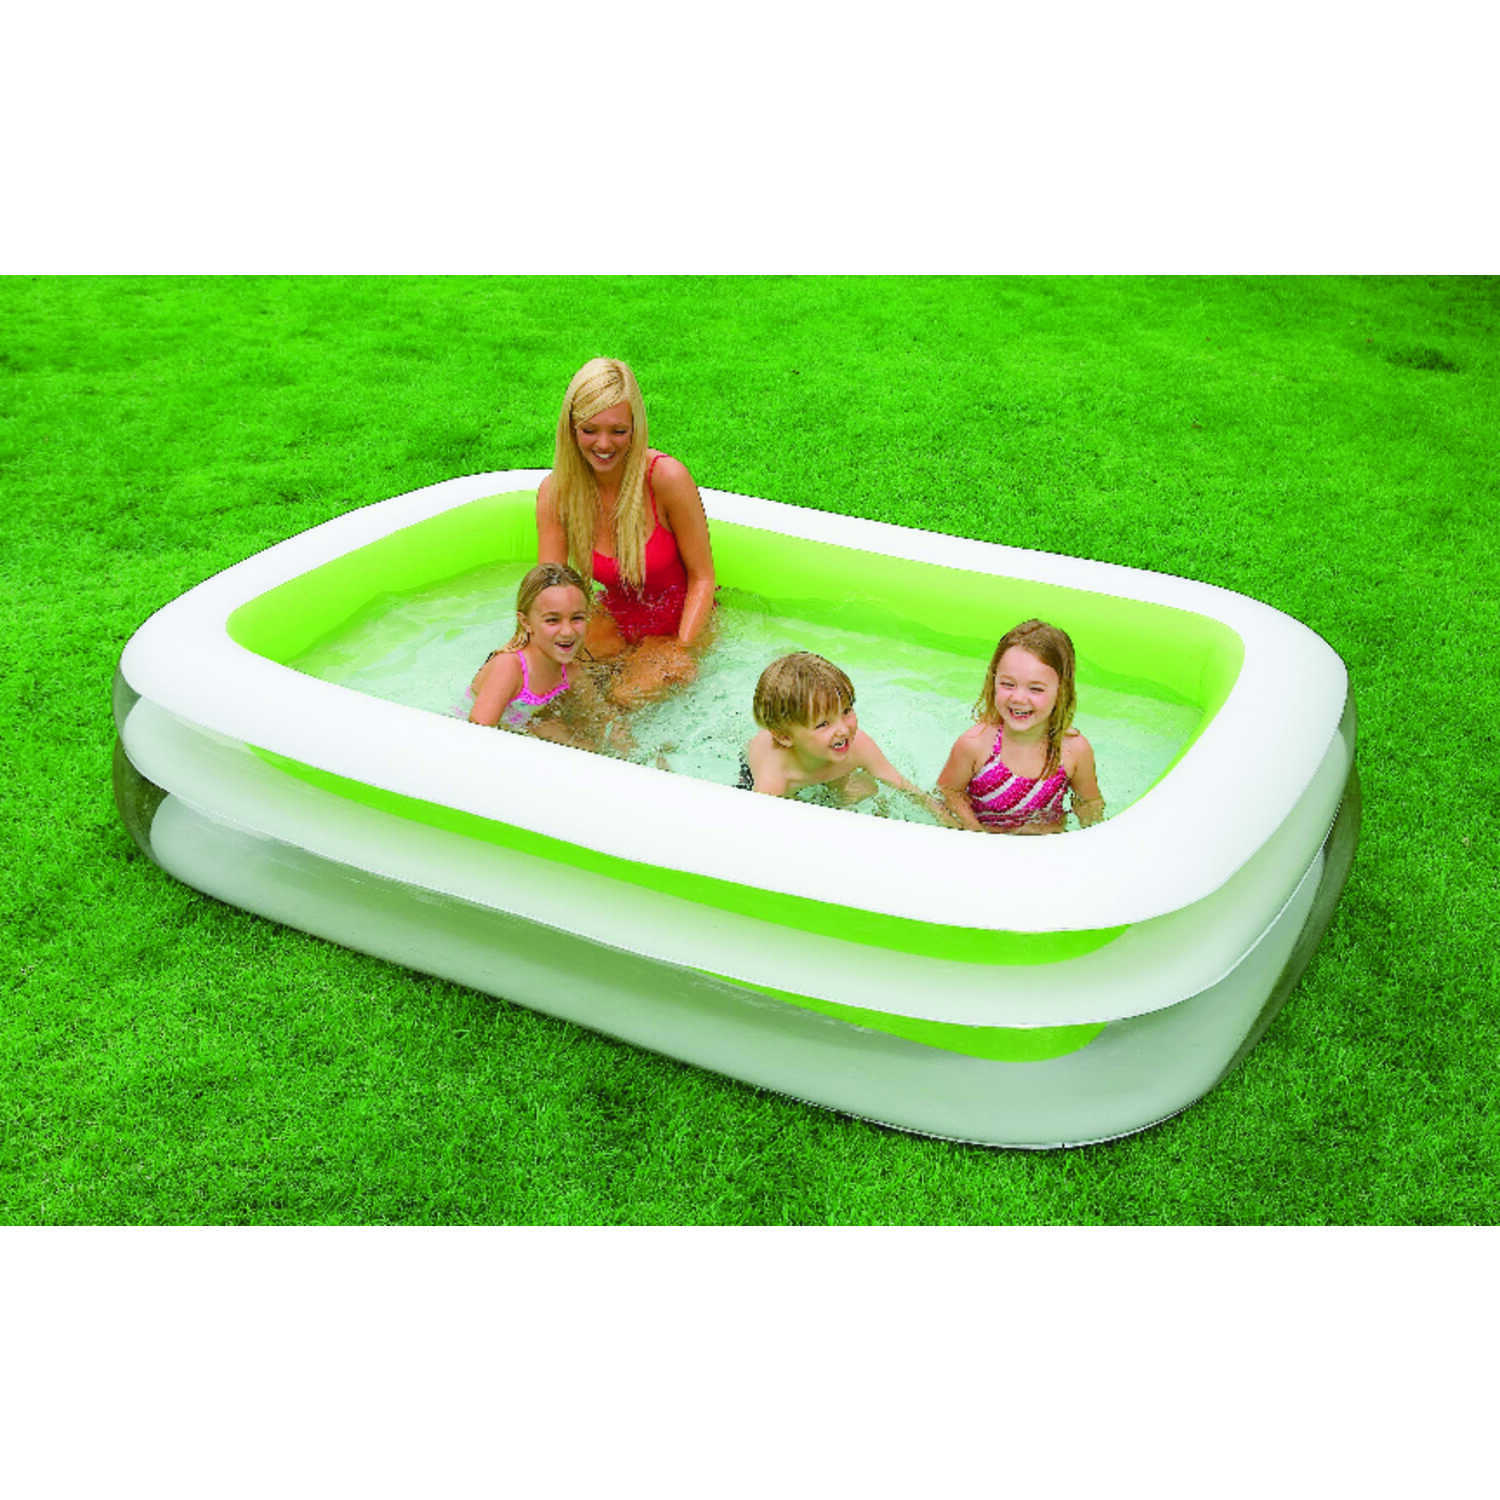 Intex  Swim Center Family  198 gal. Rectangular  Plastic  Inflatable Pool  22 in. H x 69 in. W x 103